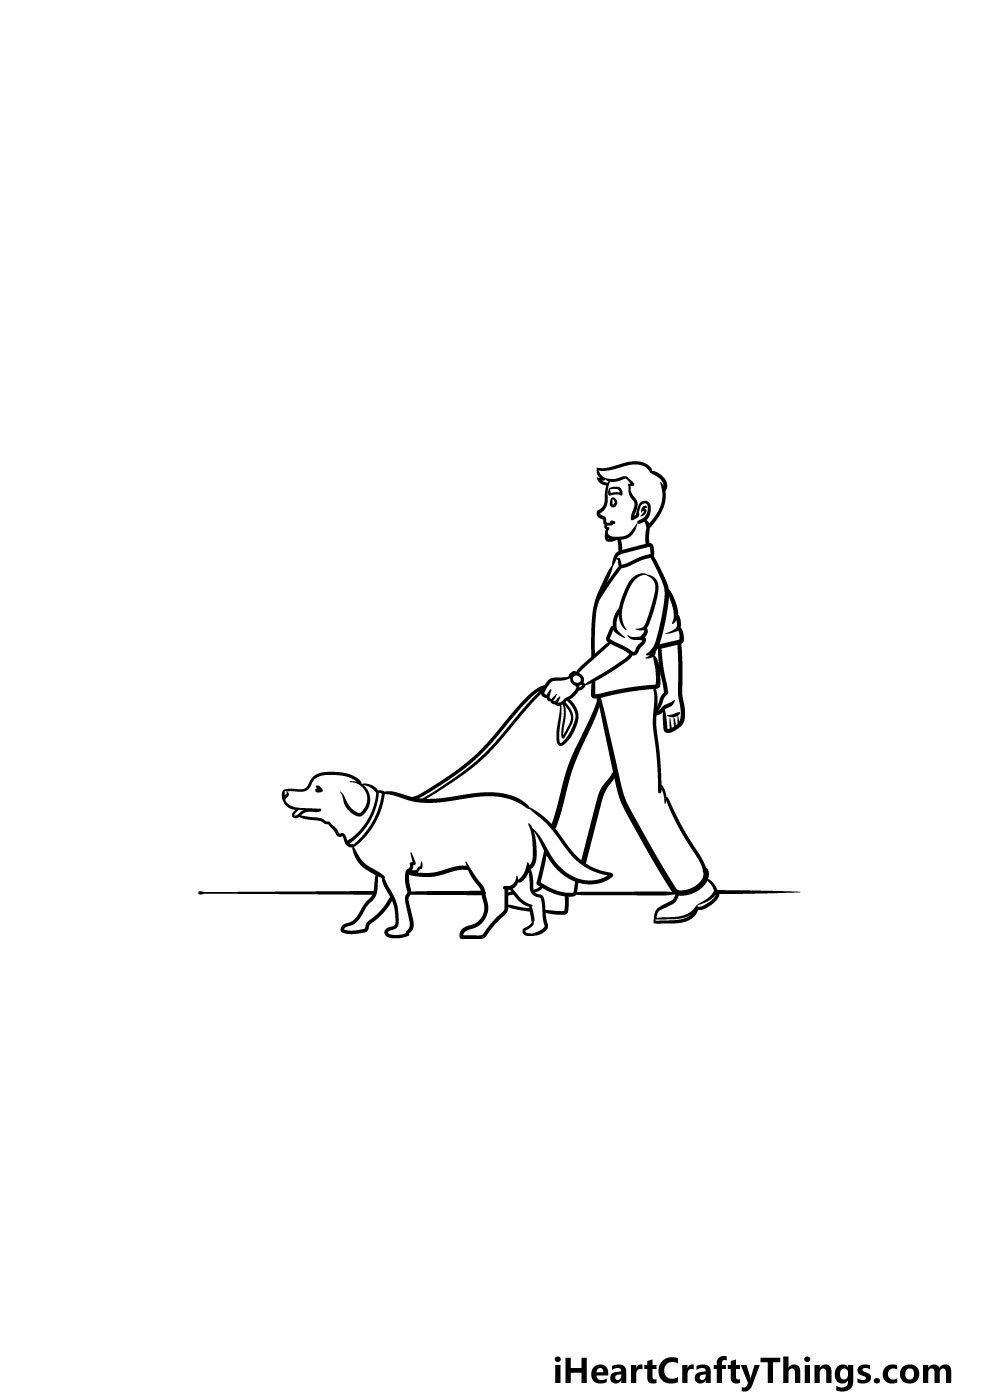 drawing a man with a dog step 5